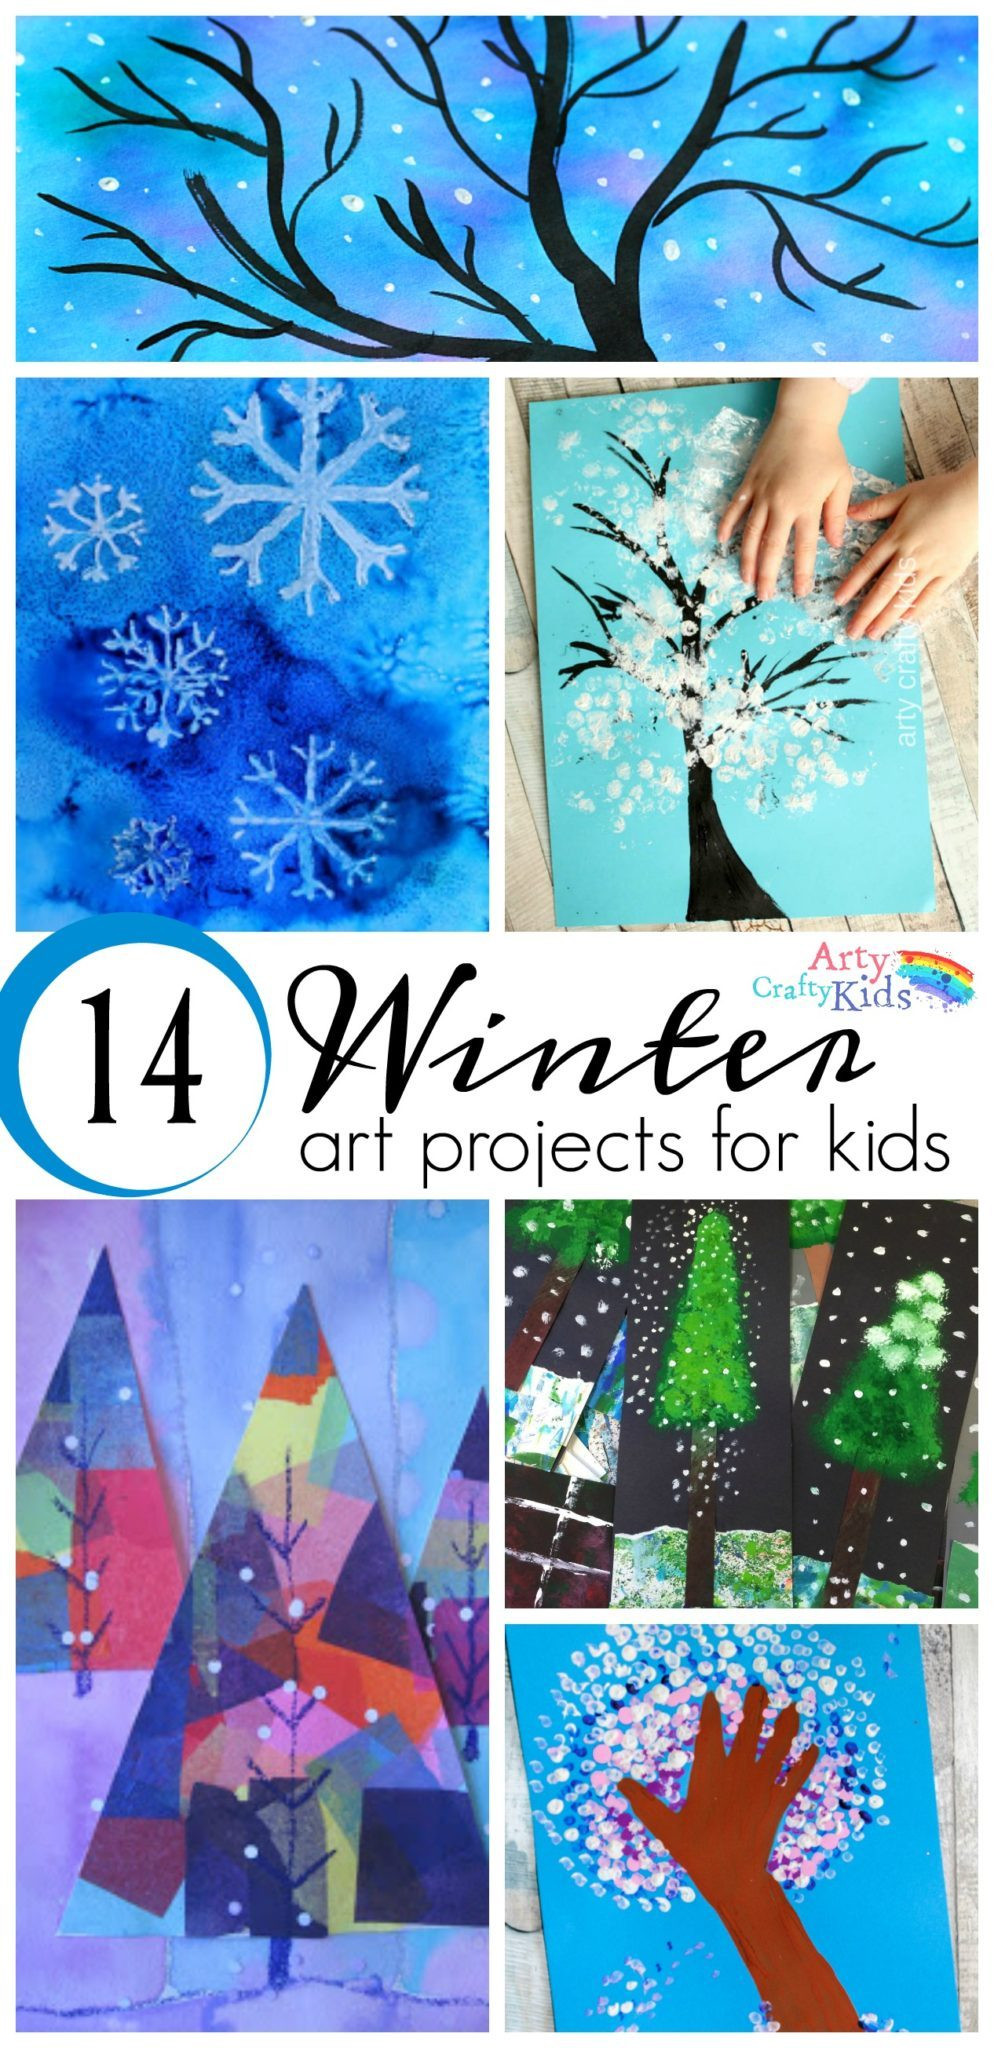 Best ideas about Winter Art Projects For Kids . Save or Pin 14 Wonderful Winter Art Projects for Kids Arty Crafty Kids Now.